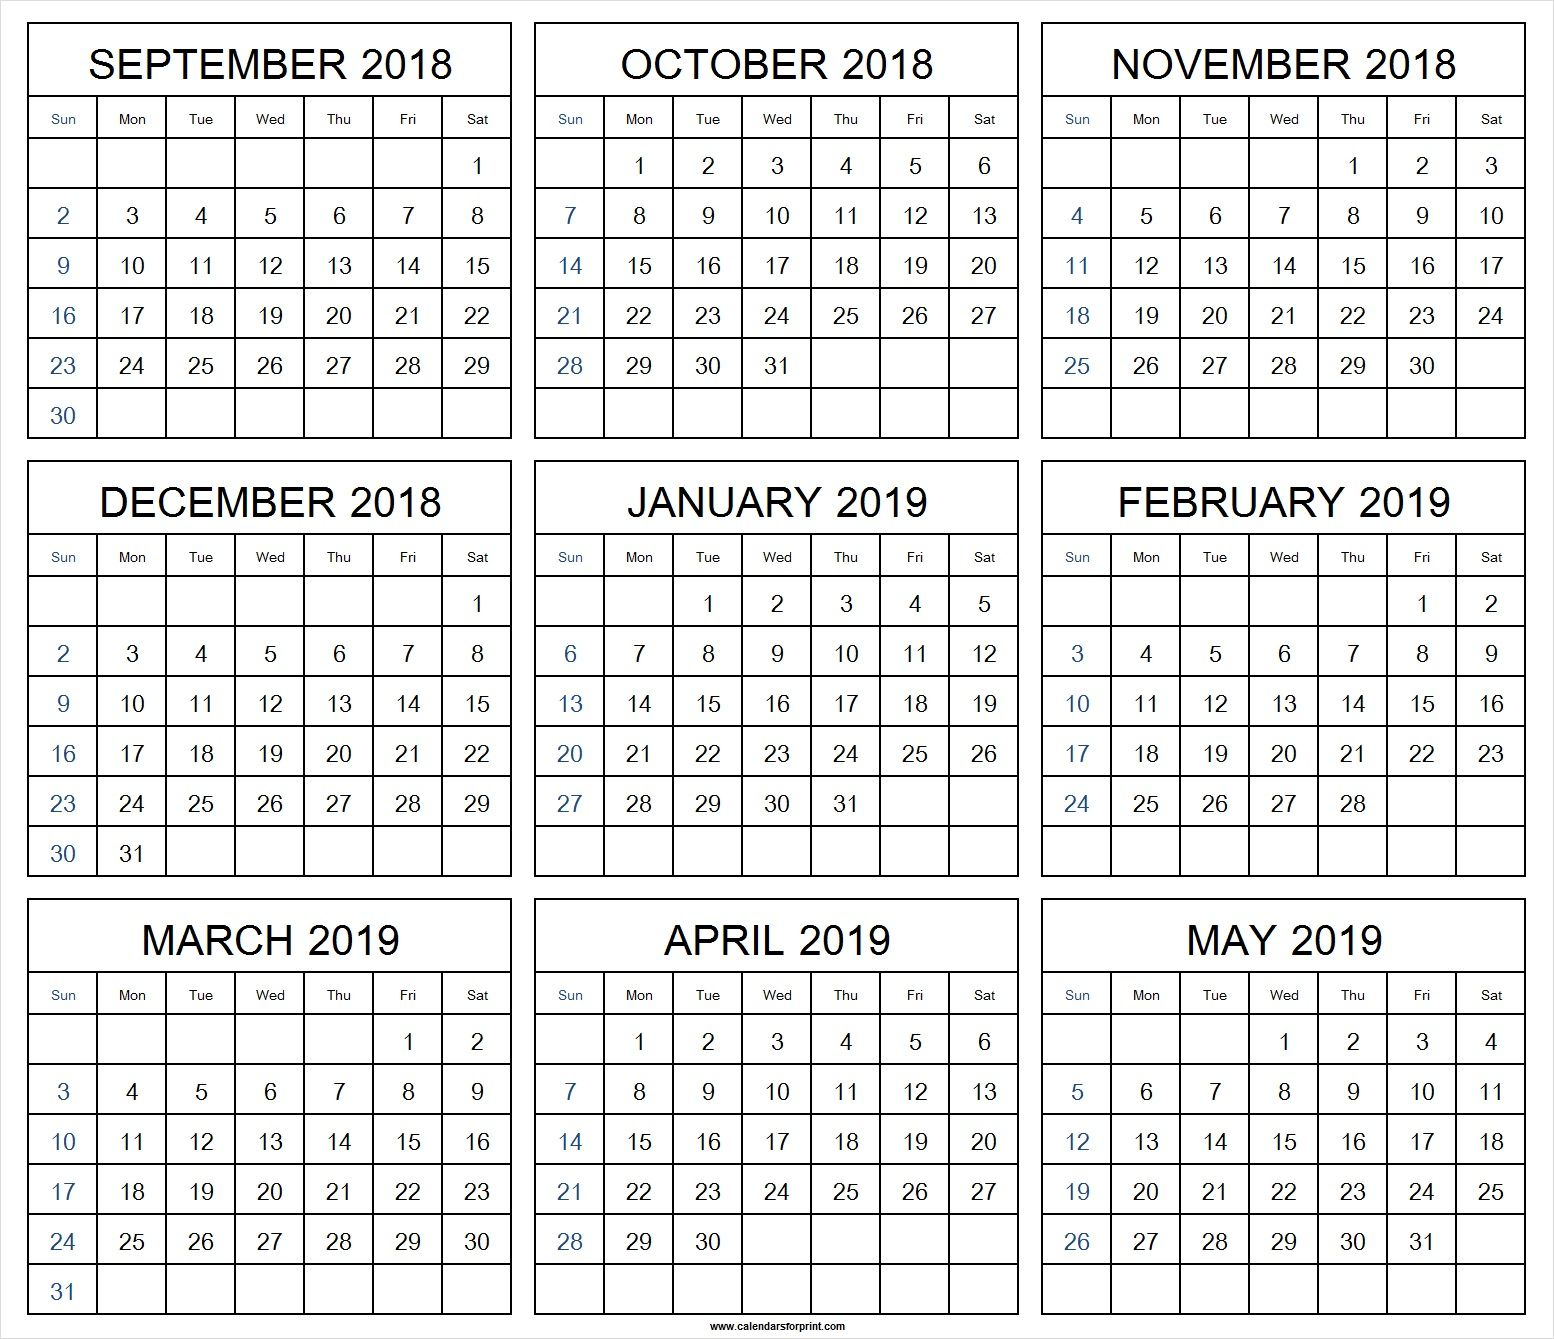 Print Monthly Calendar September 2018 May 2019 | September